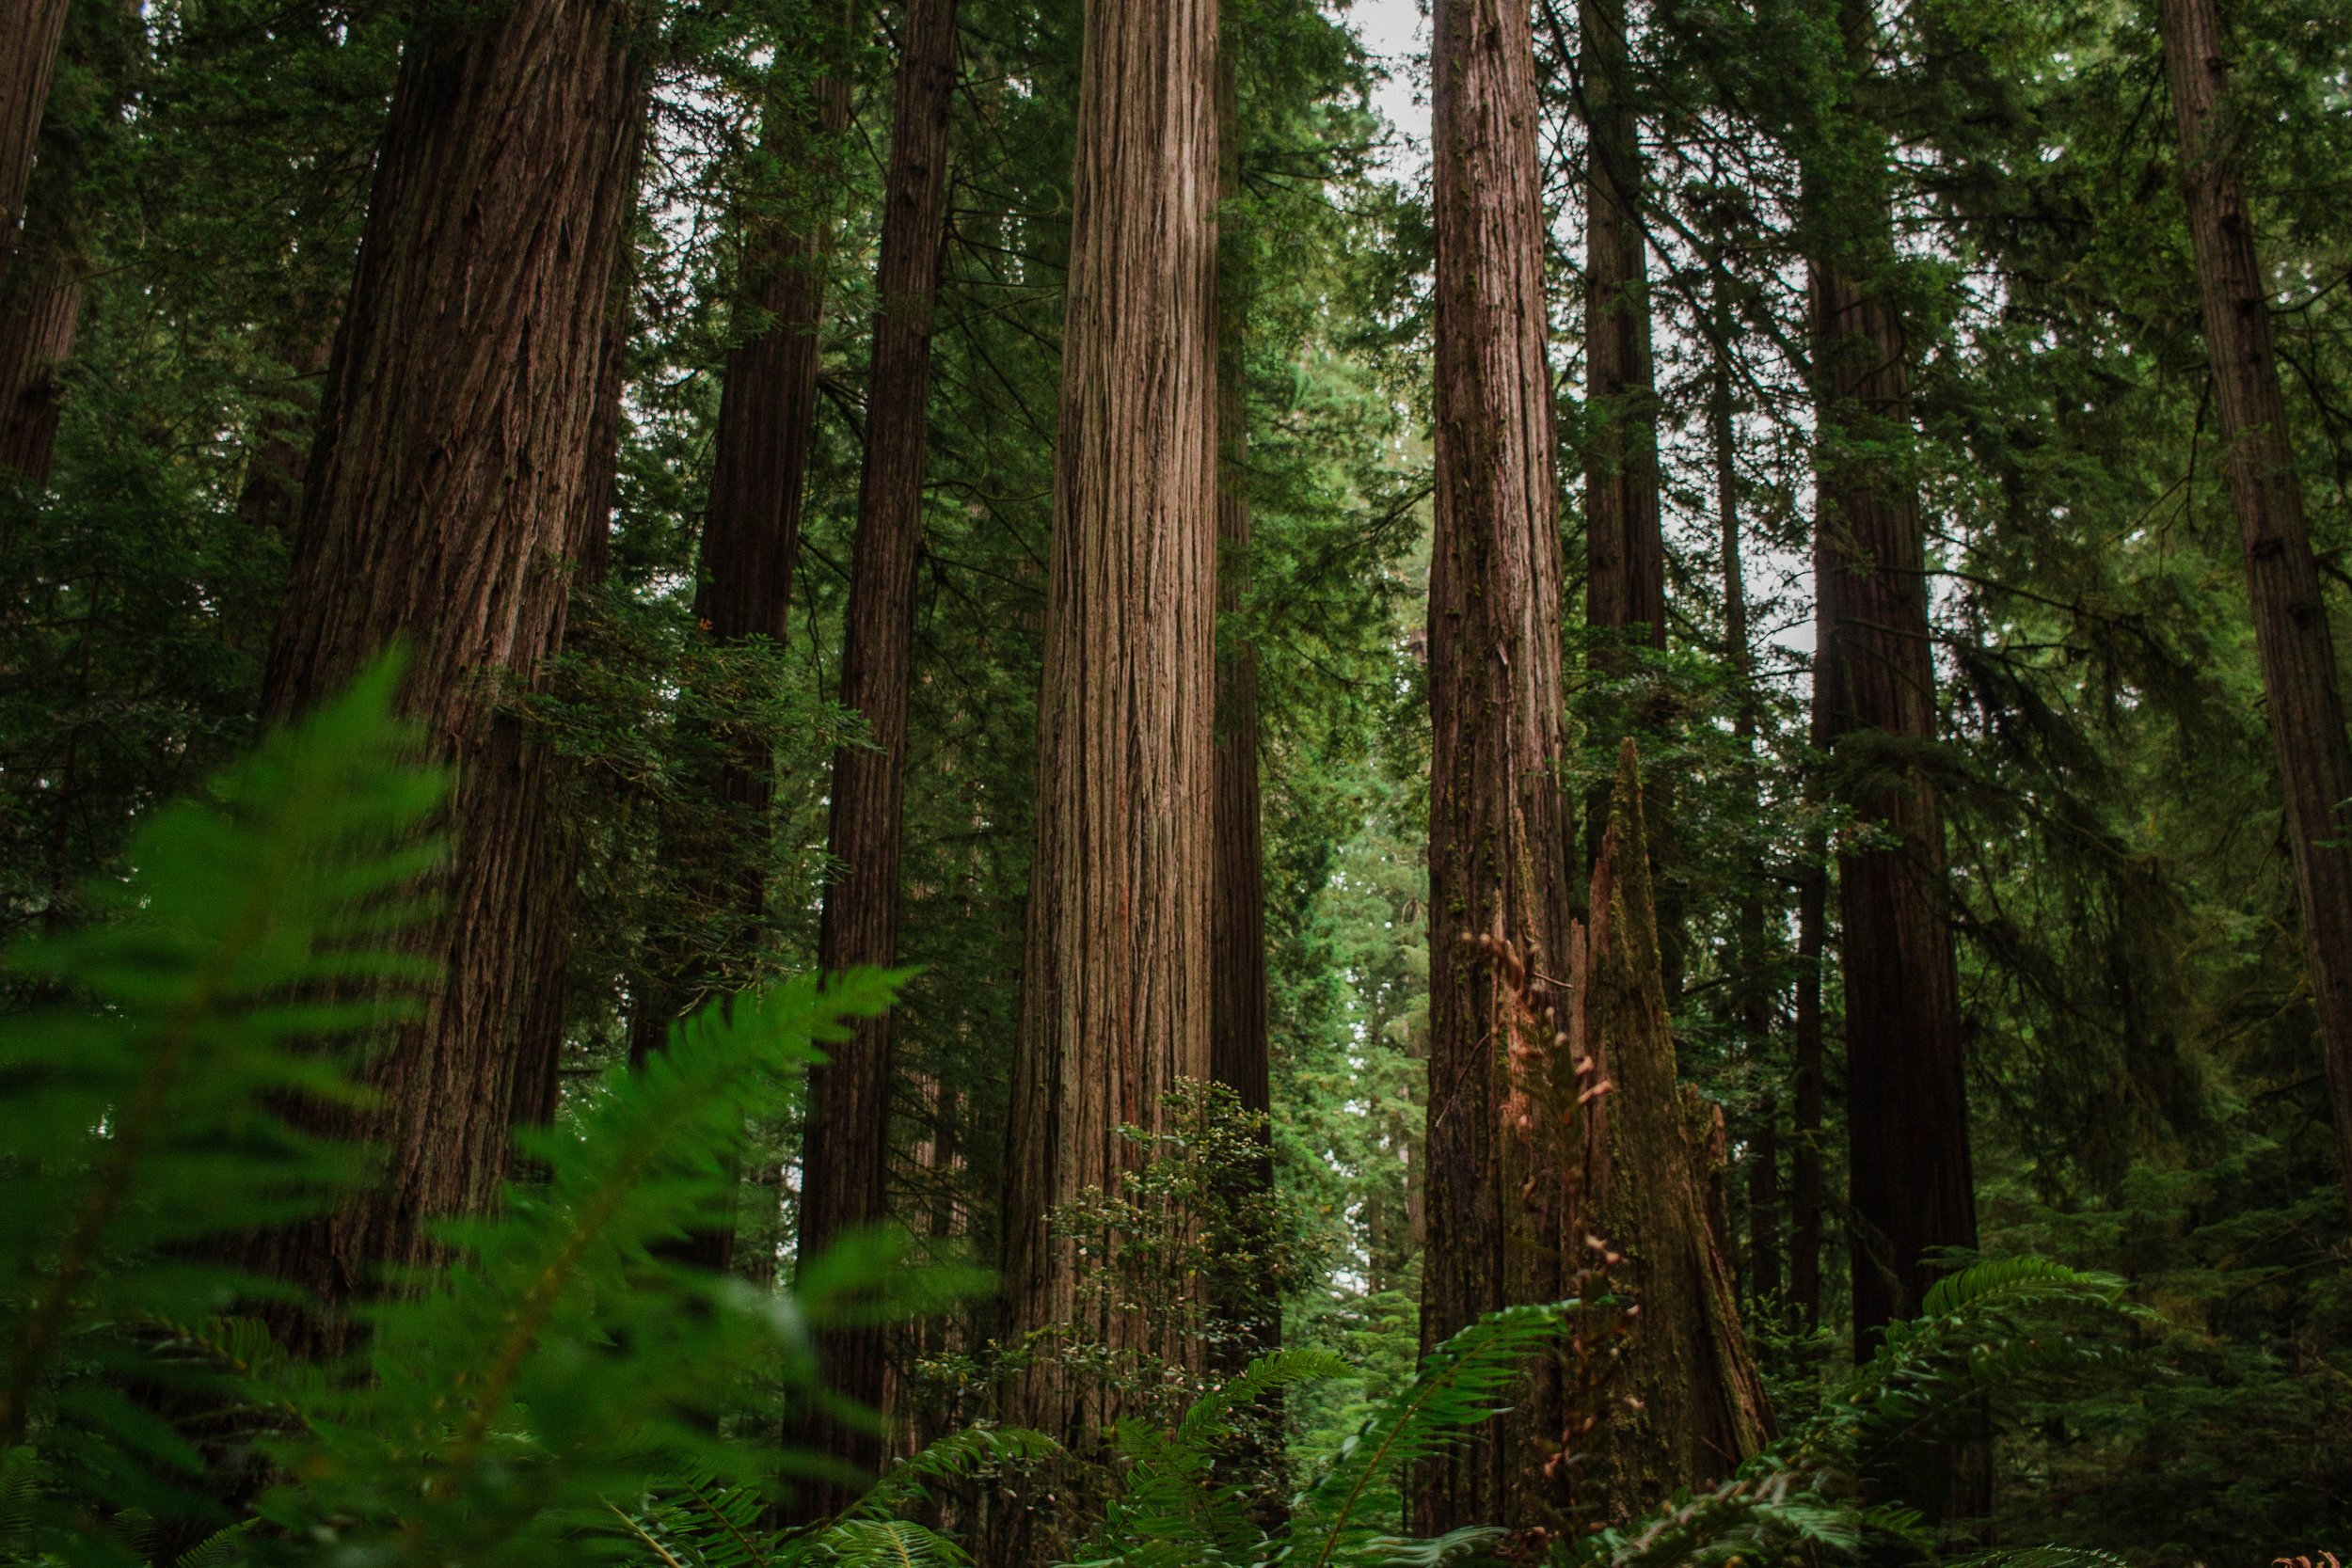 List of best national parks on the west coast : #2 Redwood national park